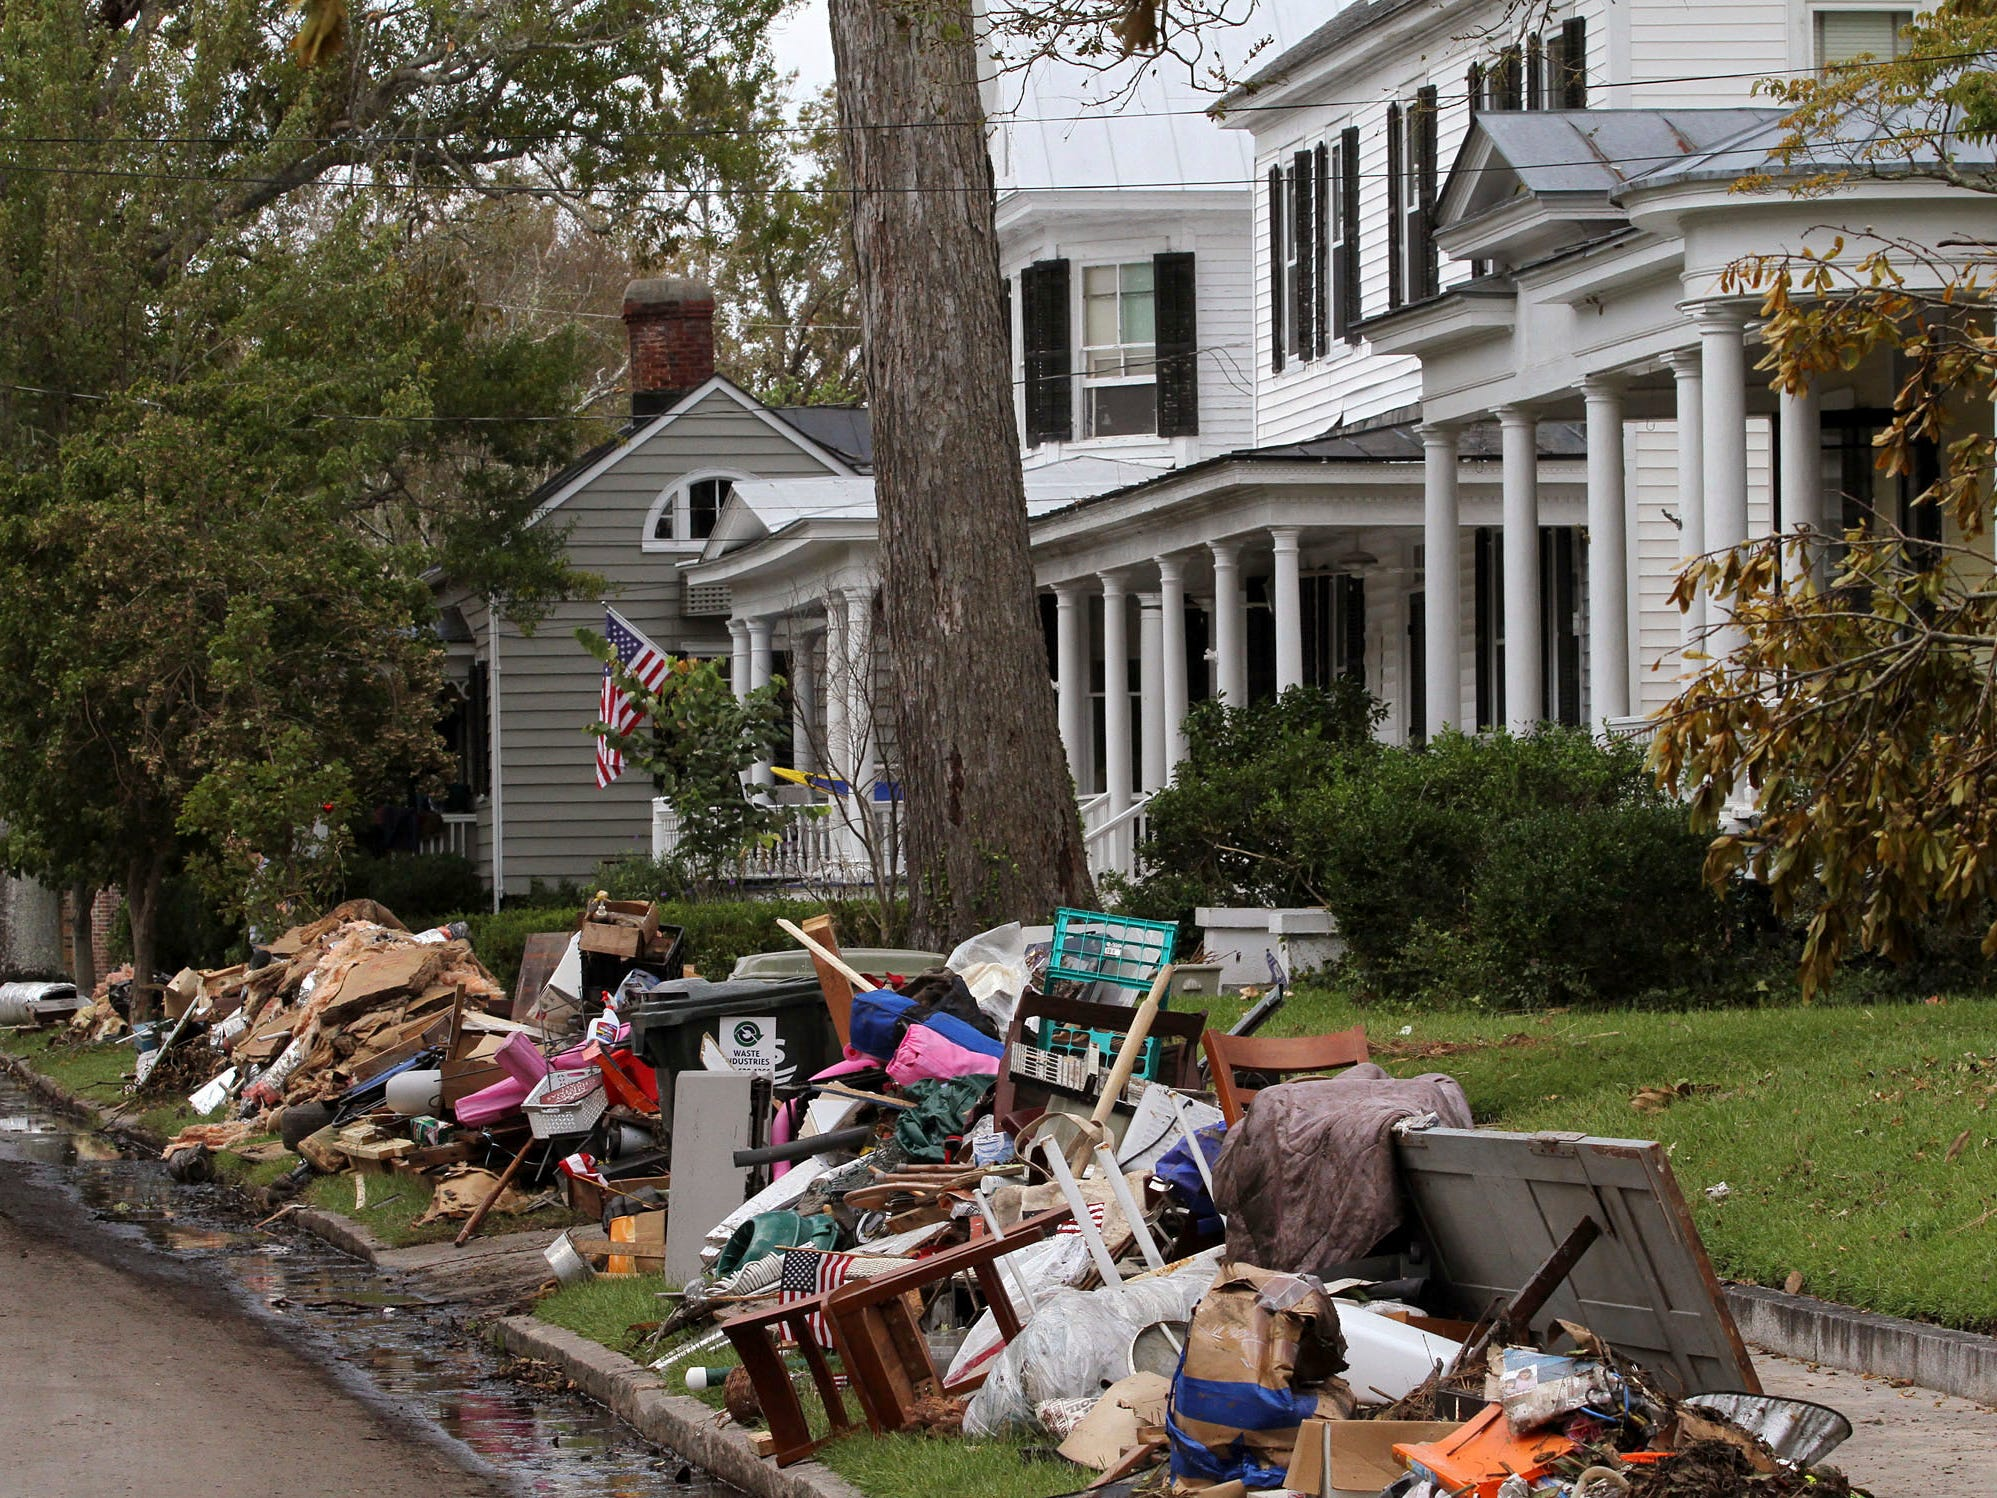 Storm damaged items and debris are piled in front of homes in the historic district in New Bern, N.C. on Sept. 20, 2018.